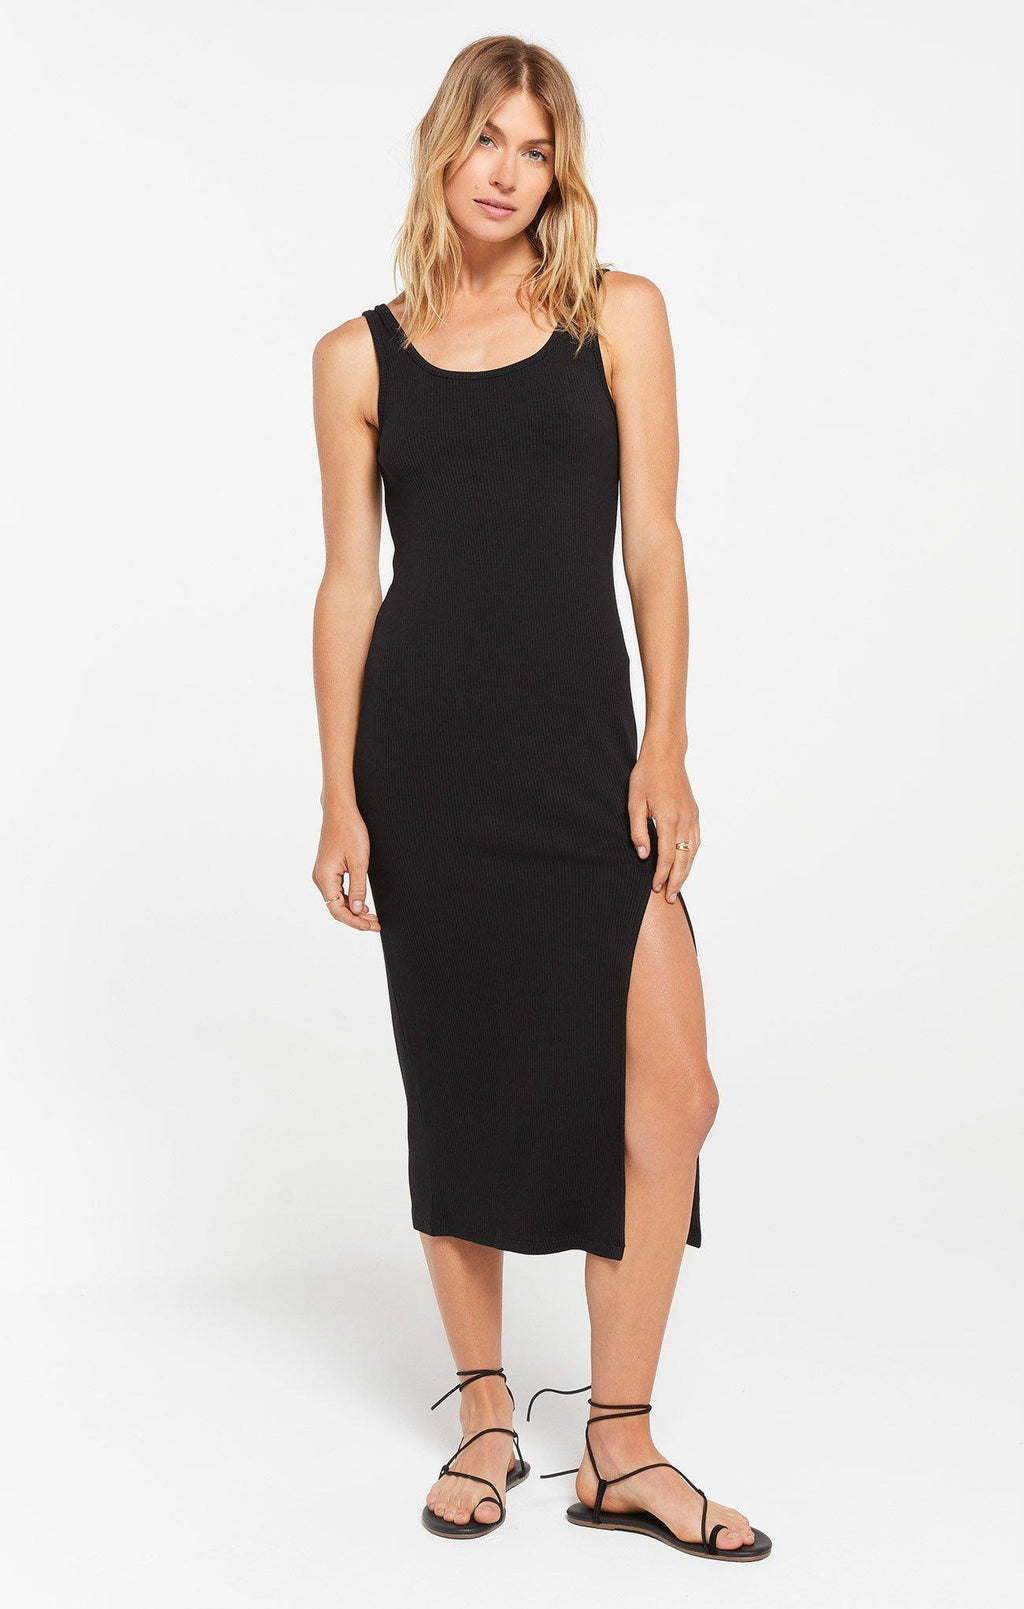 Z Supply Melina Rib Dress - 13 Hub Lane   |